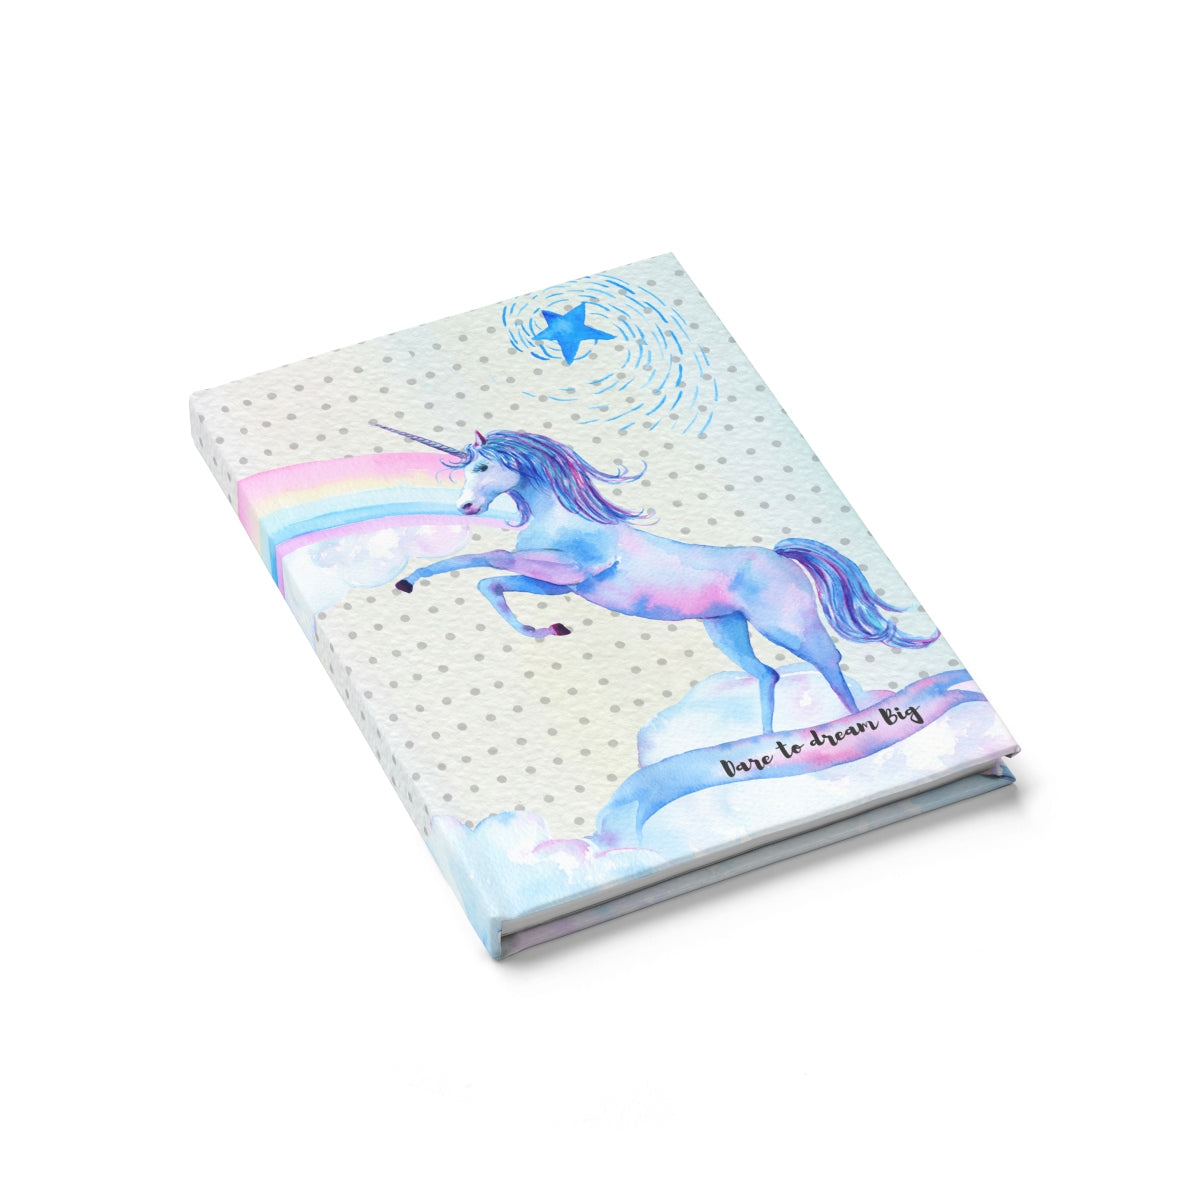 Osez rêver Grand Journal avec Licorne Aquarelle et Arc en Ciel - - Angel Effect Shop